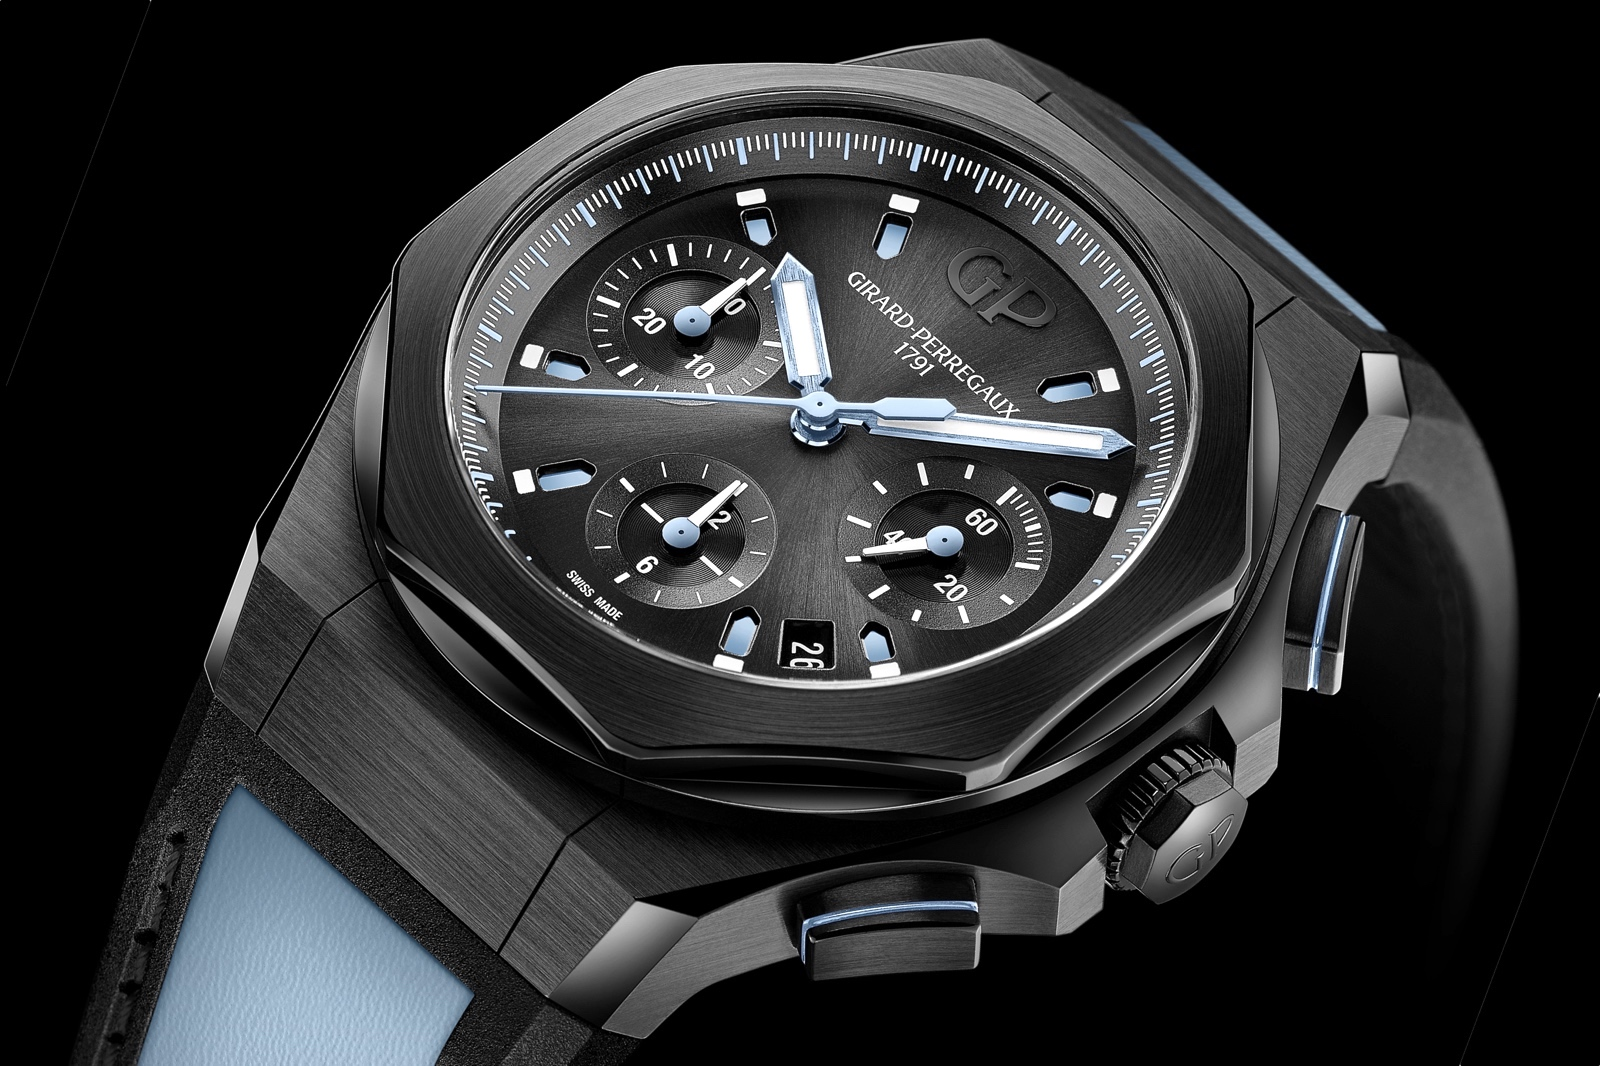 Girard-Perregaux Laureato Absolute Chronograph Only Watch 2019 Detail